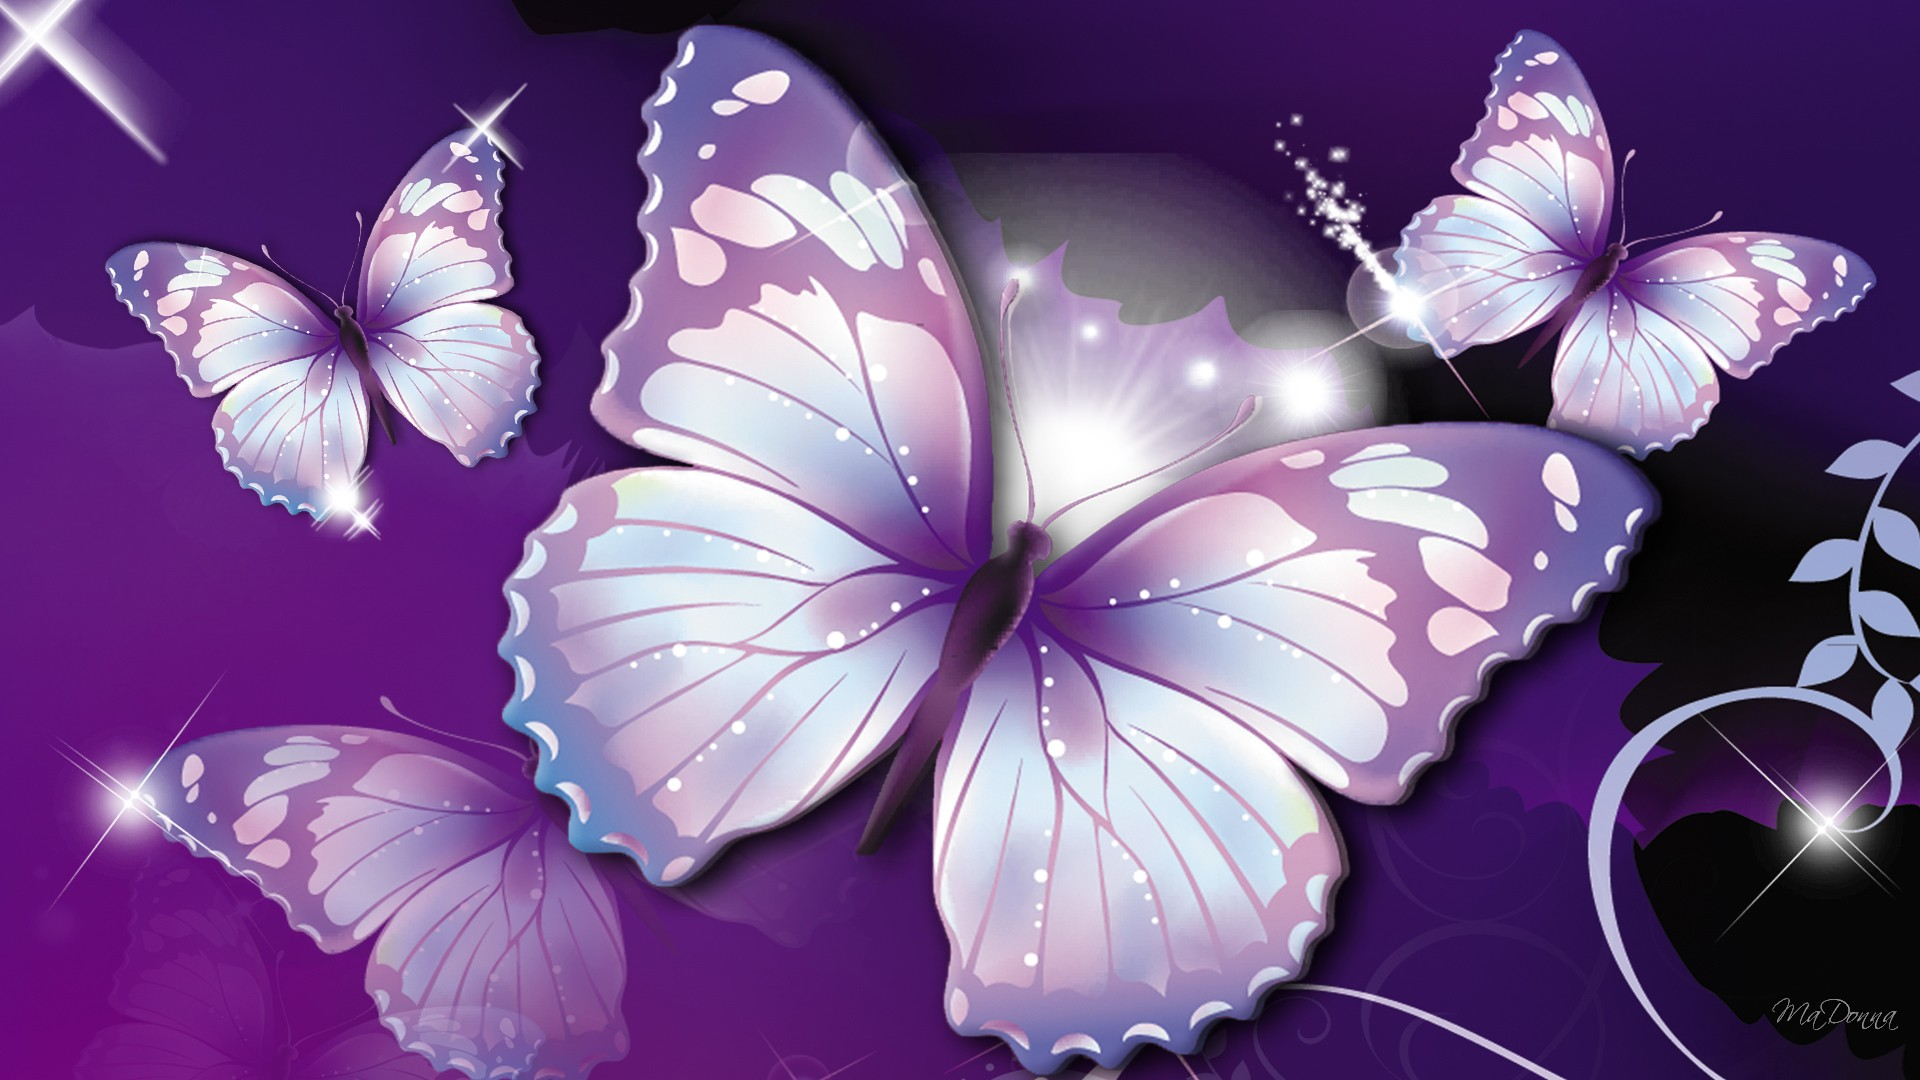 Cute Butterfly Desktop Wallpapers, Cute Butterfly Wallpapers For